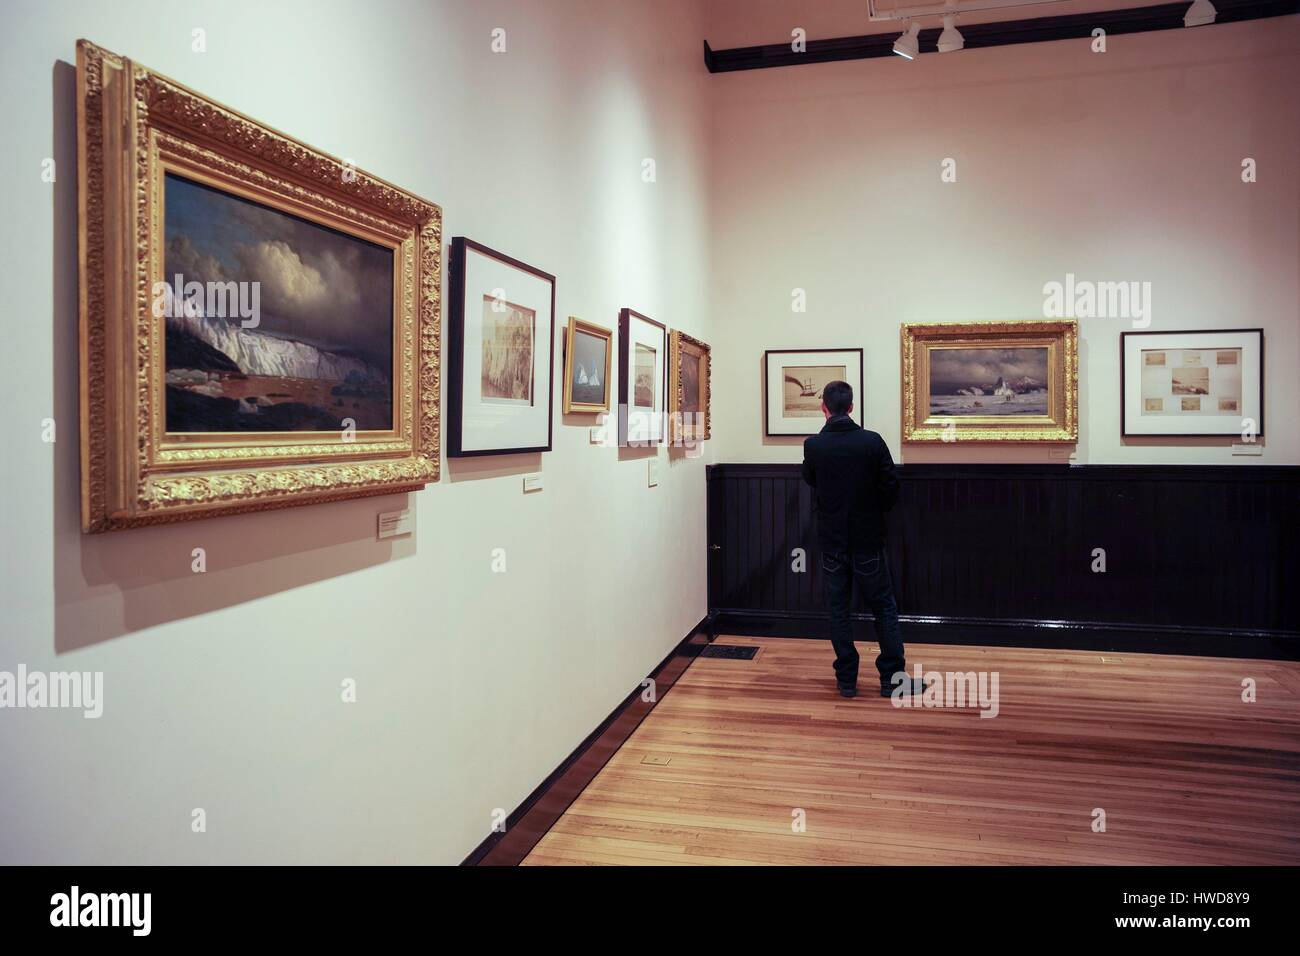 United States, Massachusetts, New Bedford, New Bedford Whaling Museum, paintings gallery Stock Photo